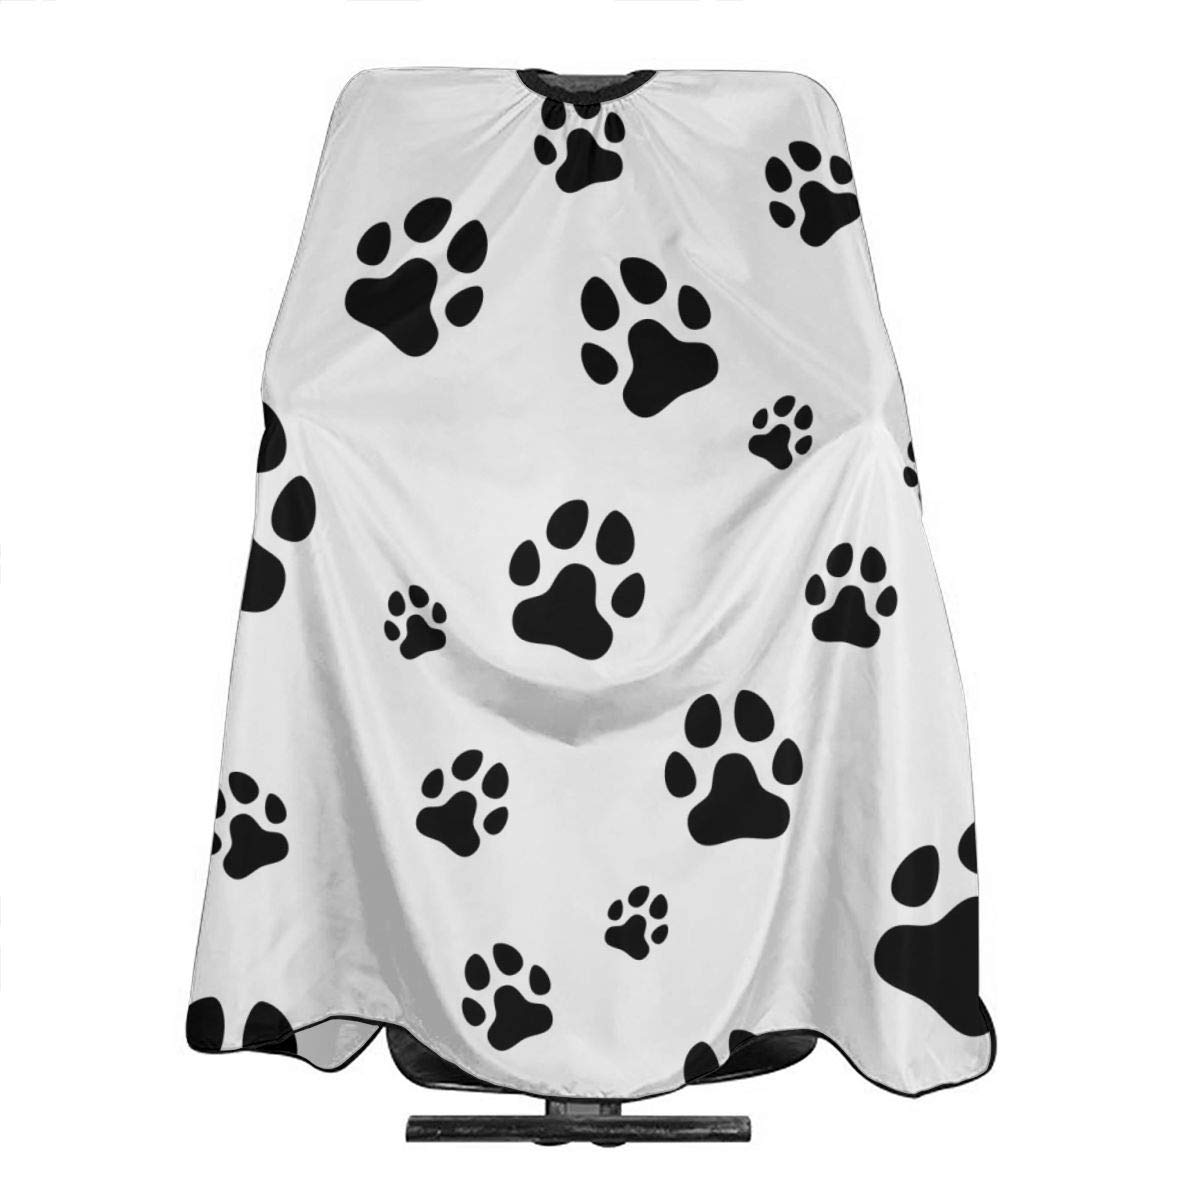 Barber Cape Black Dog Paw Print Cat Footprint On White Professional Salon Hair Cutting Capes For Hair Stylist Waterproof Haircut Hairstylist Clients Hairstylist Capes For Adult Men Women Kids